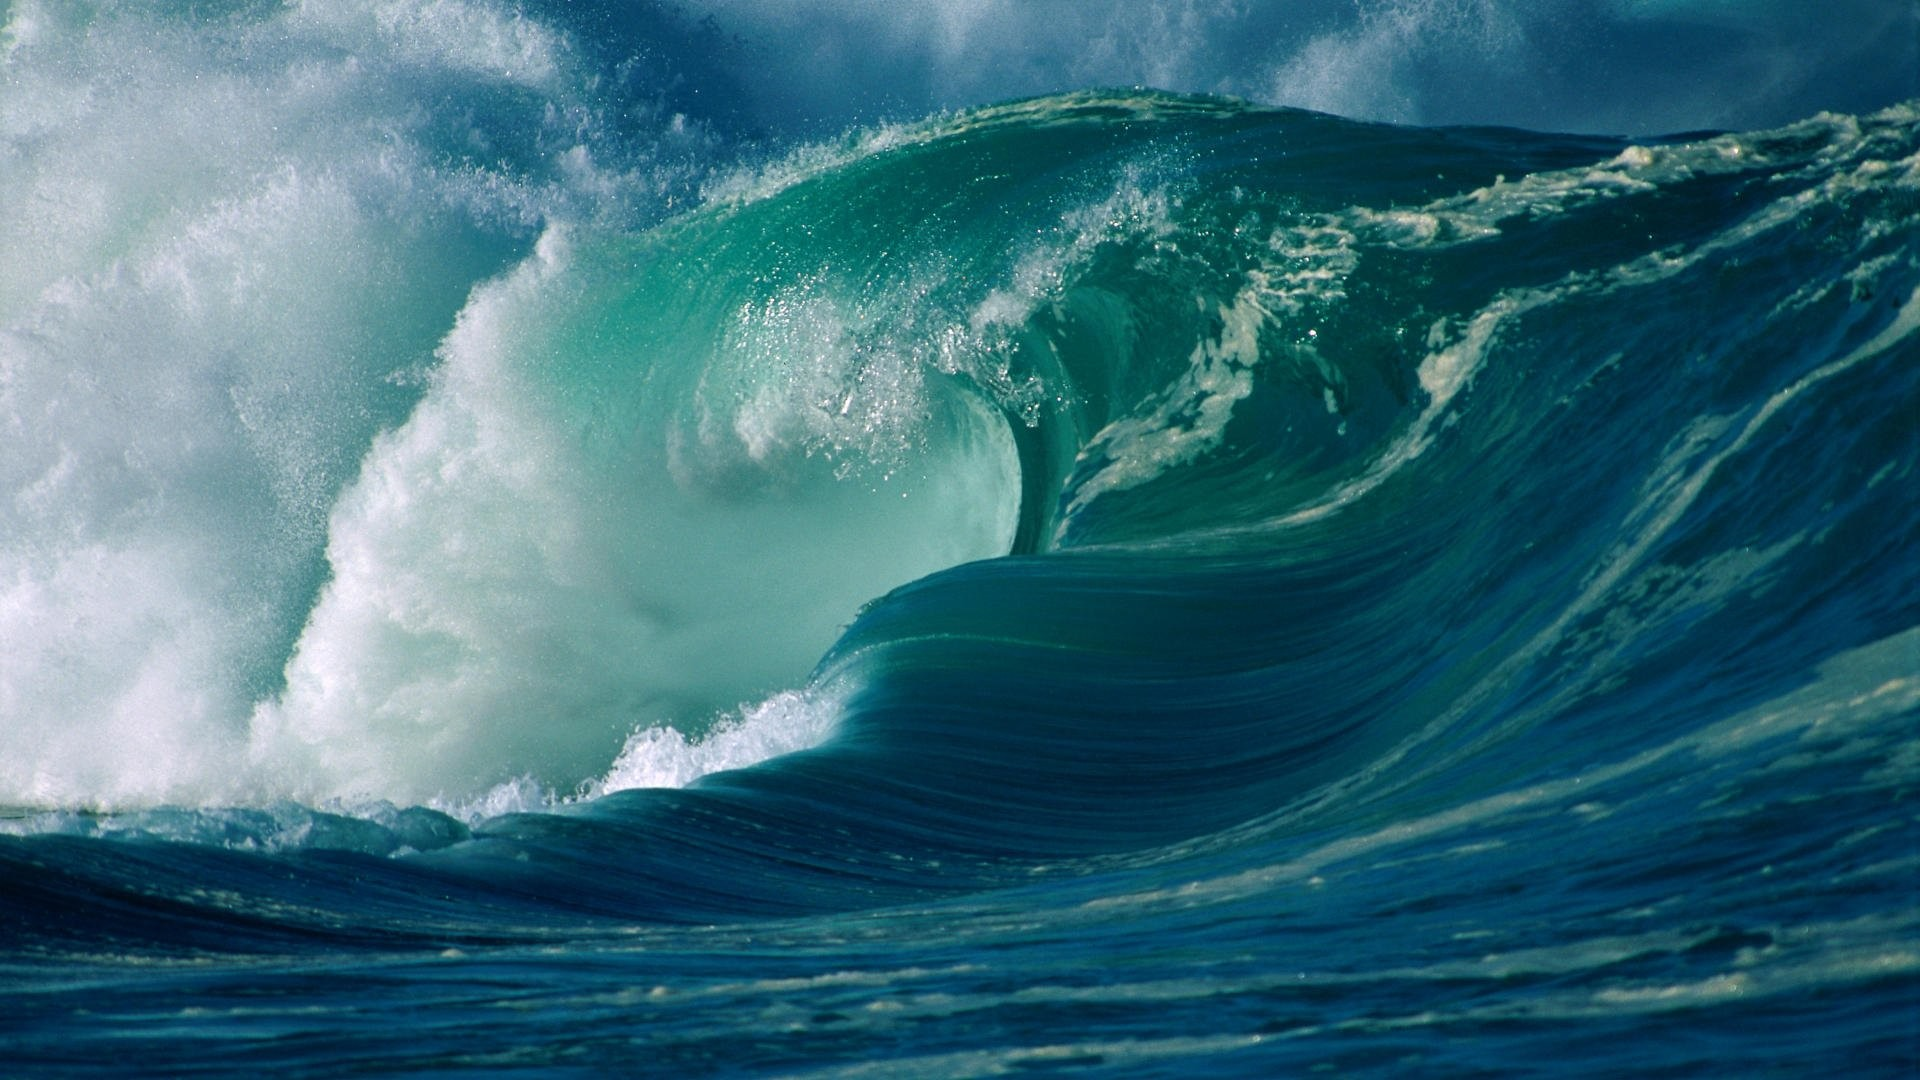 … wallpapers surfer magazine; hawaiian surfing wallpaper images reverse  search …